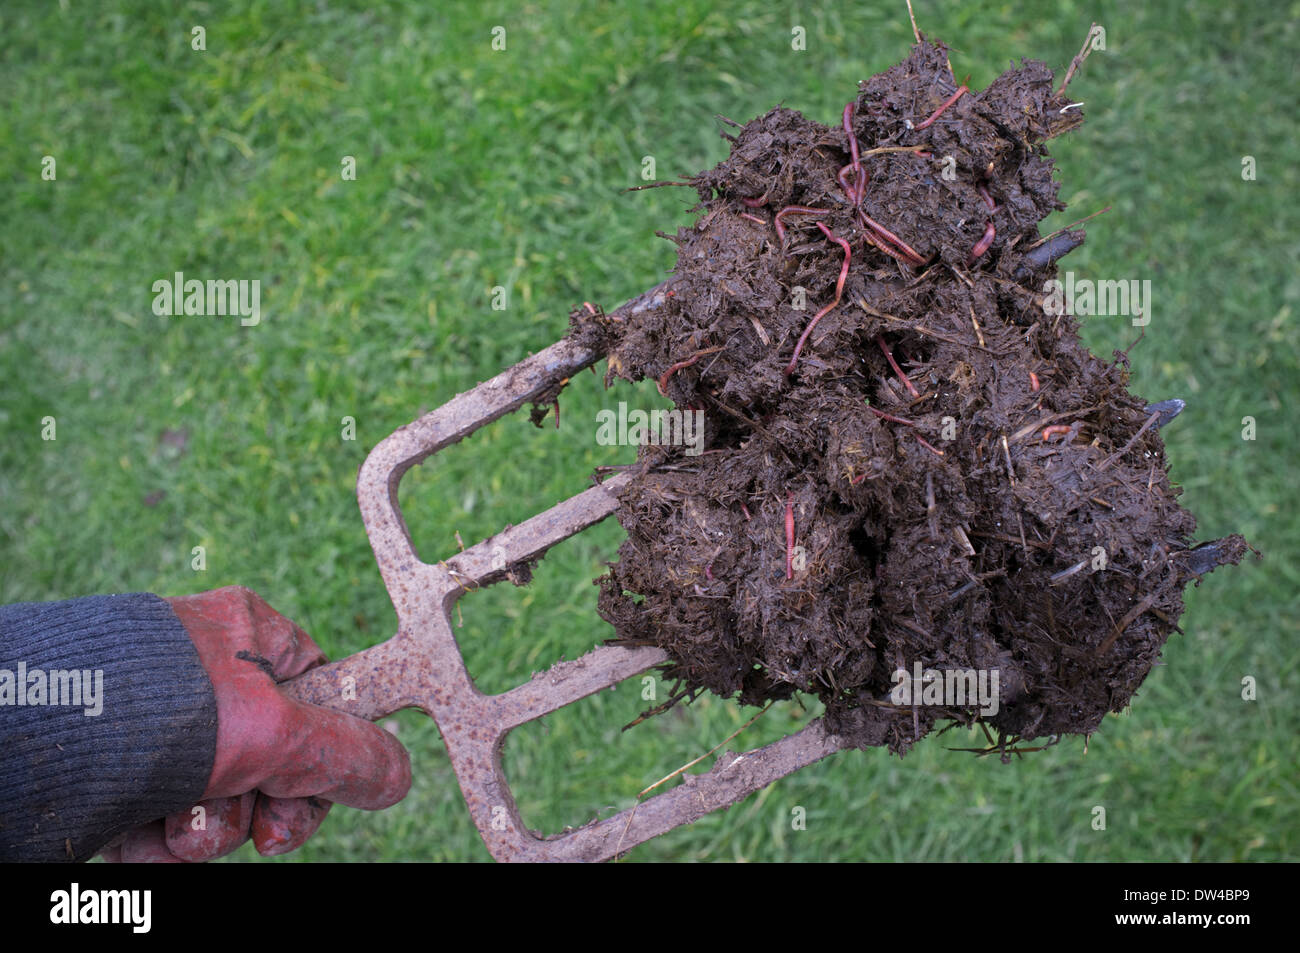 A forkful of horse manure on a garden fork Stock Photo